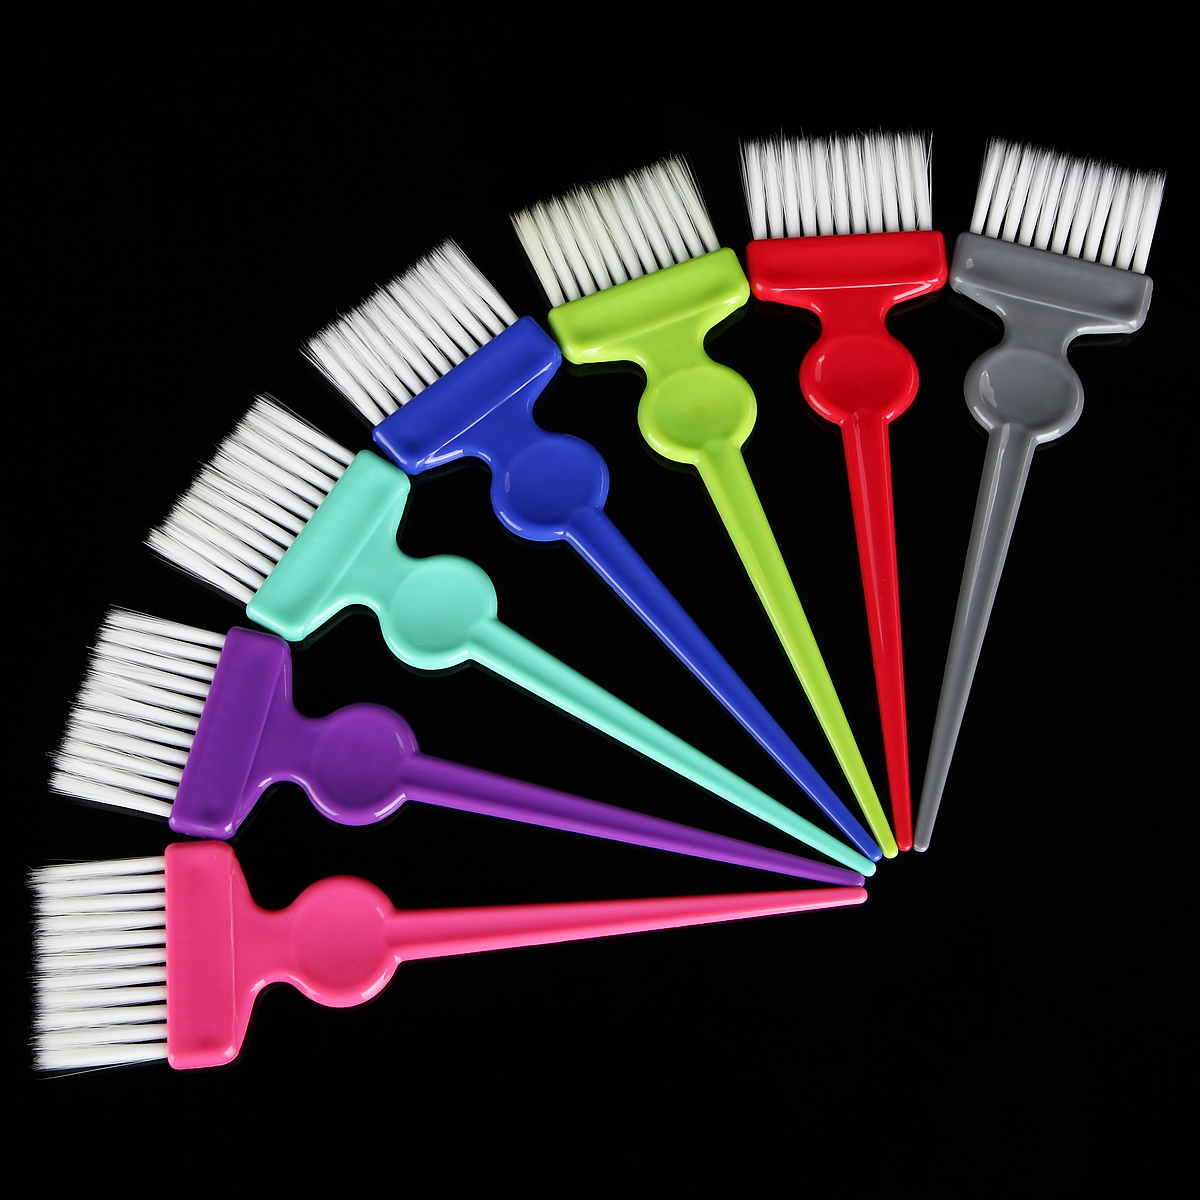 1pcs Plastic Hair Dye Coloring Brush Barber Salon Tint Hairdressing Styling Tools Hair Color